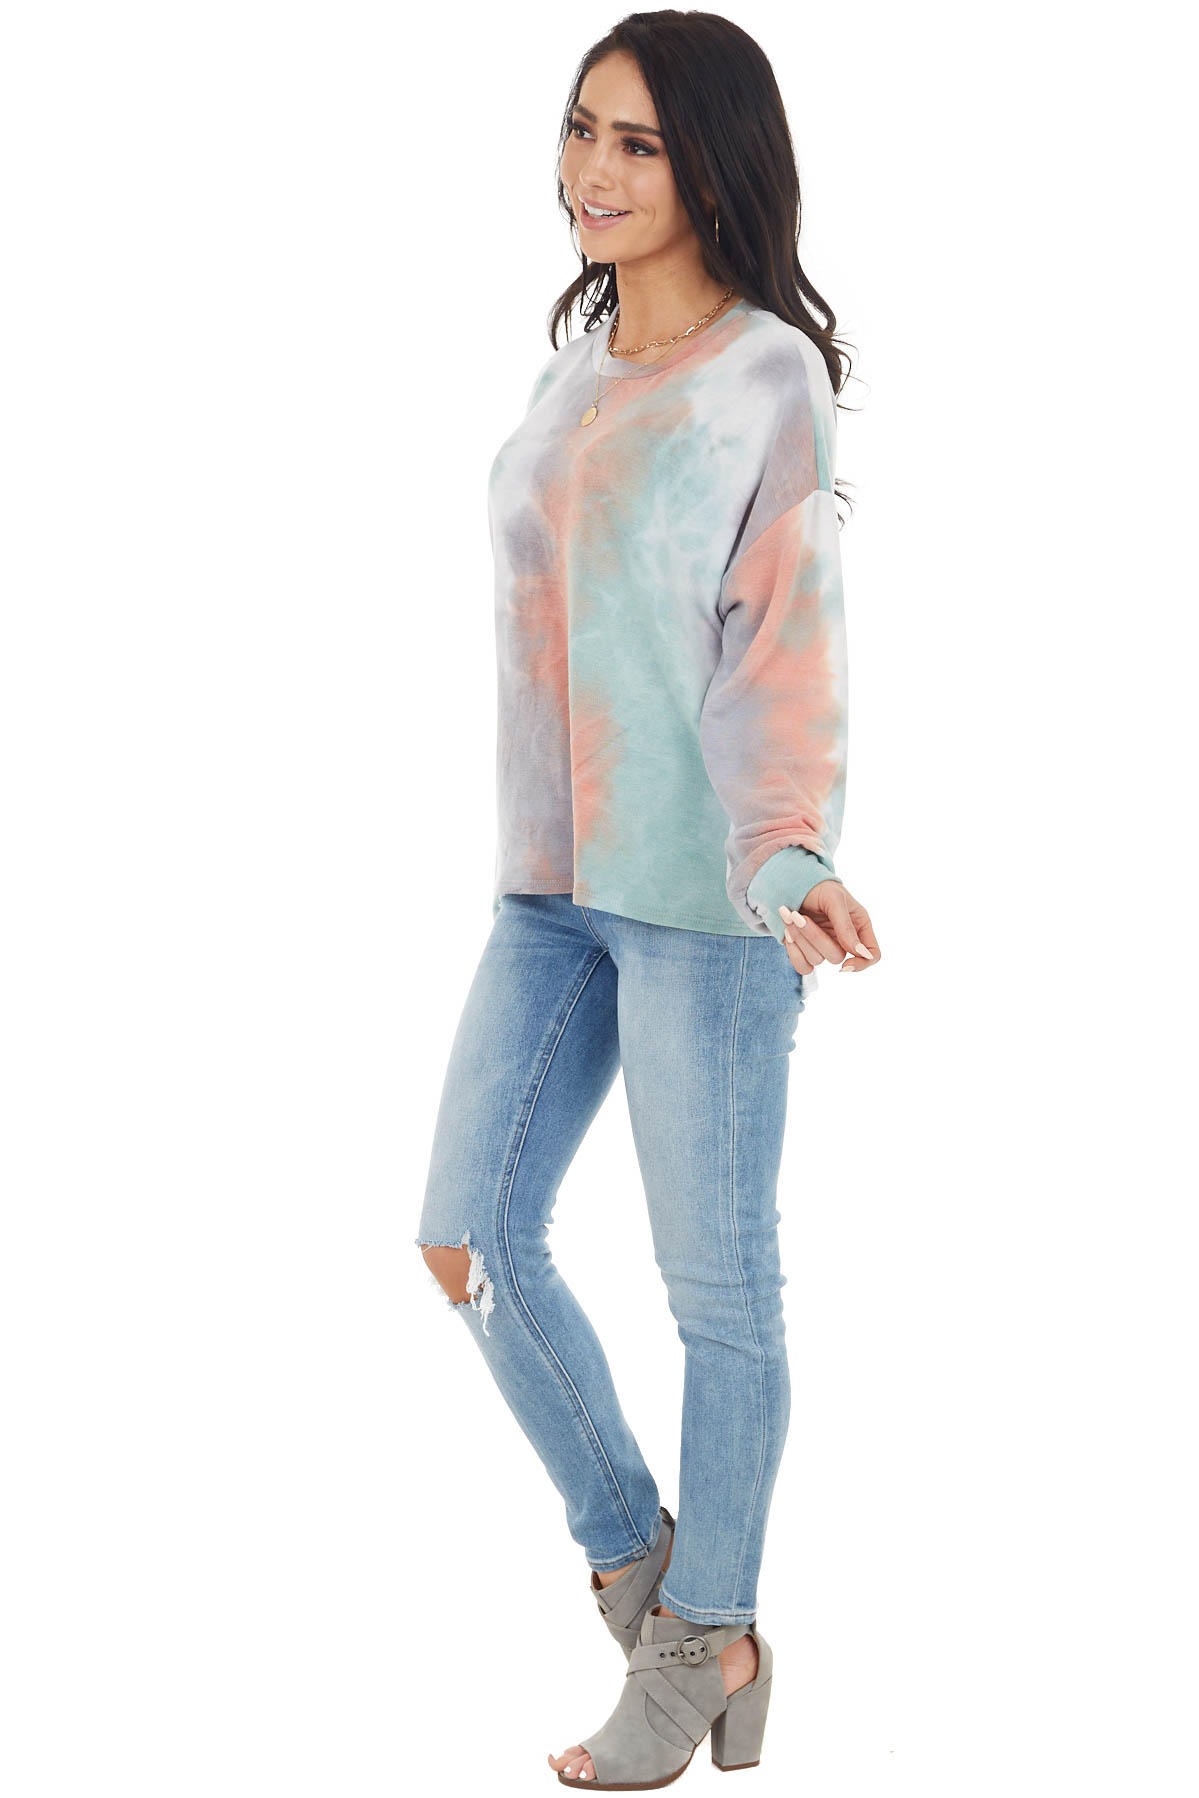 Multicolor Tie Dye Long Sleeve Top with Long Bubble Sleeves